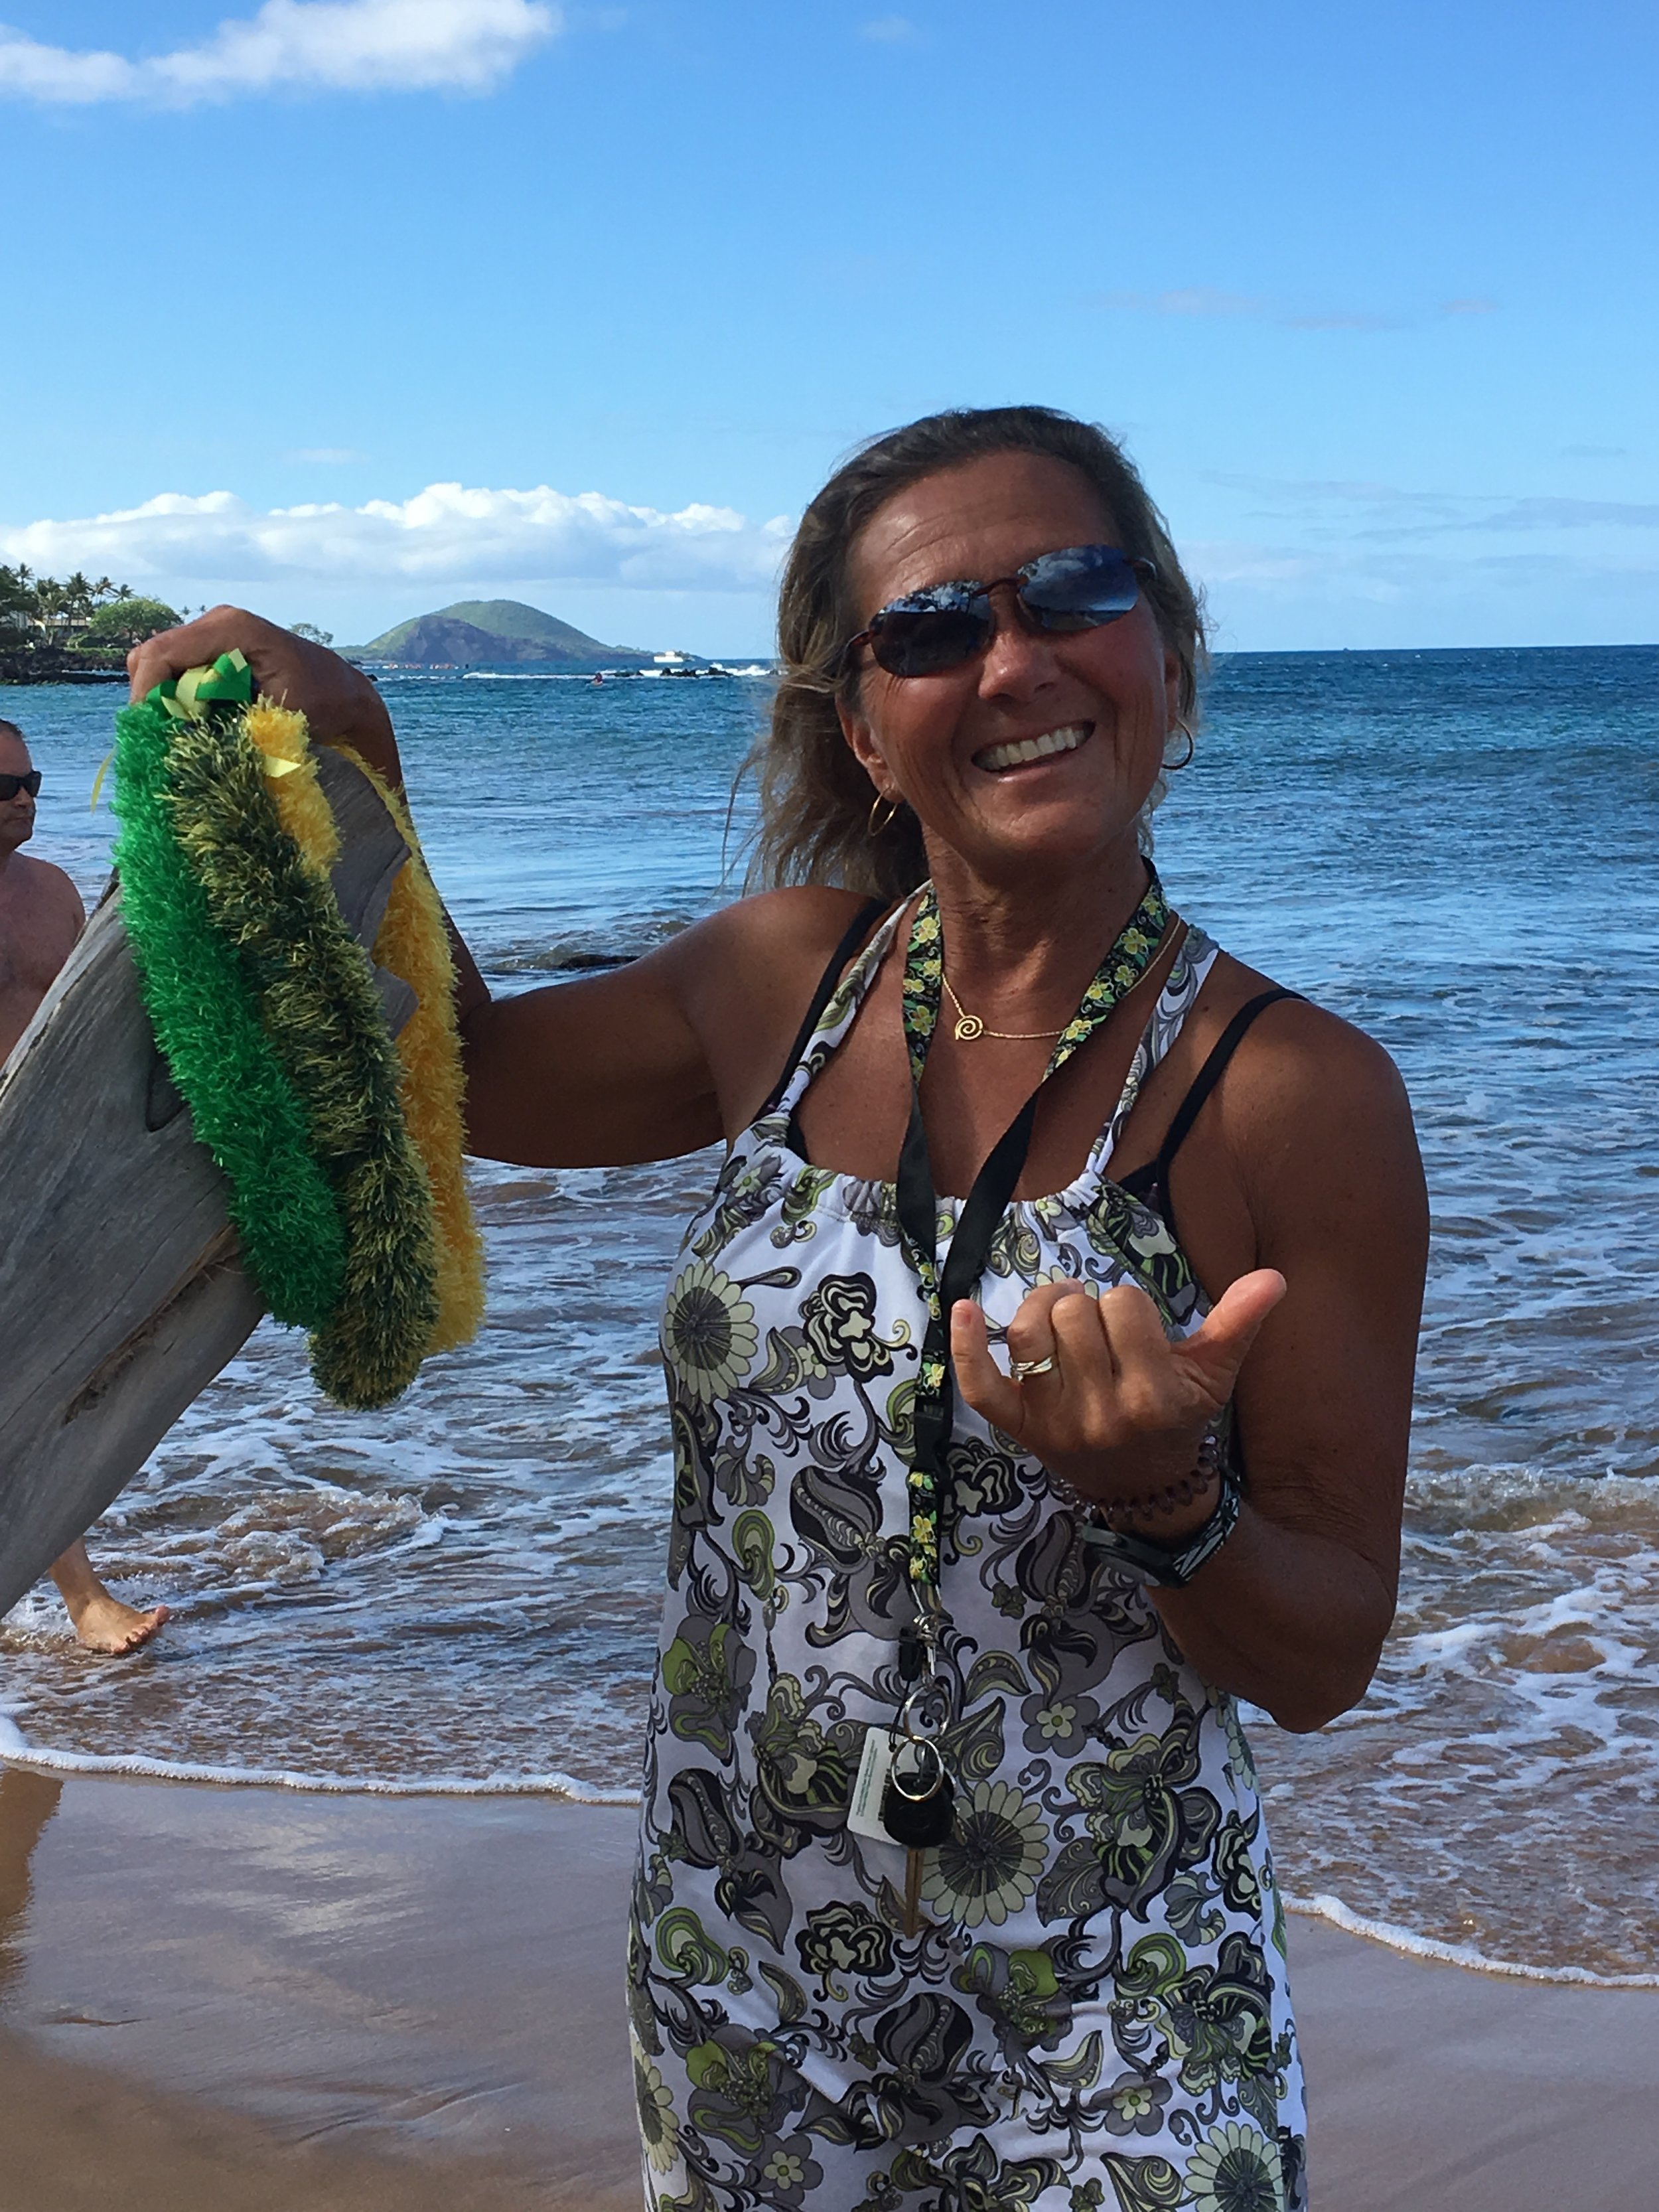 Our Story - I began Always Aloha Leis in 2013 while living and working in Maui. It all started when an 'auntie